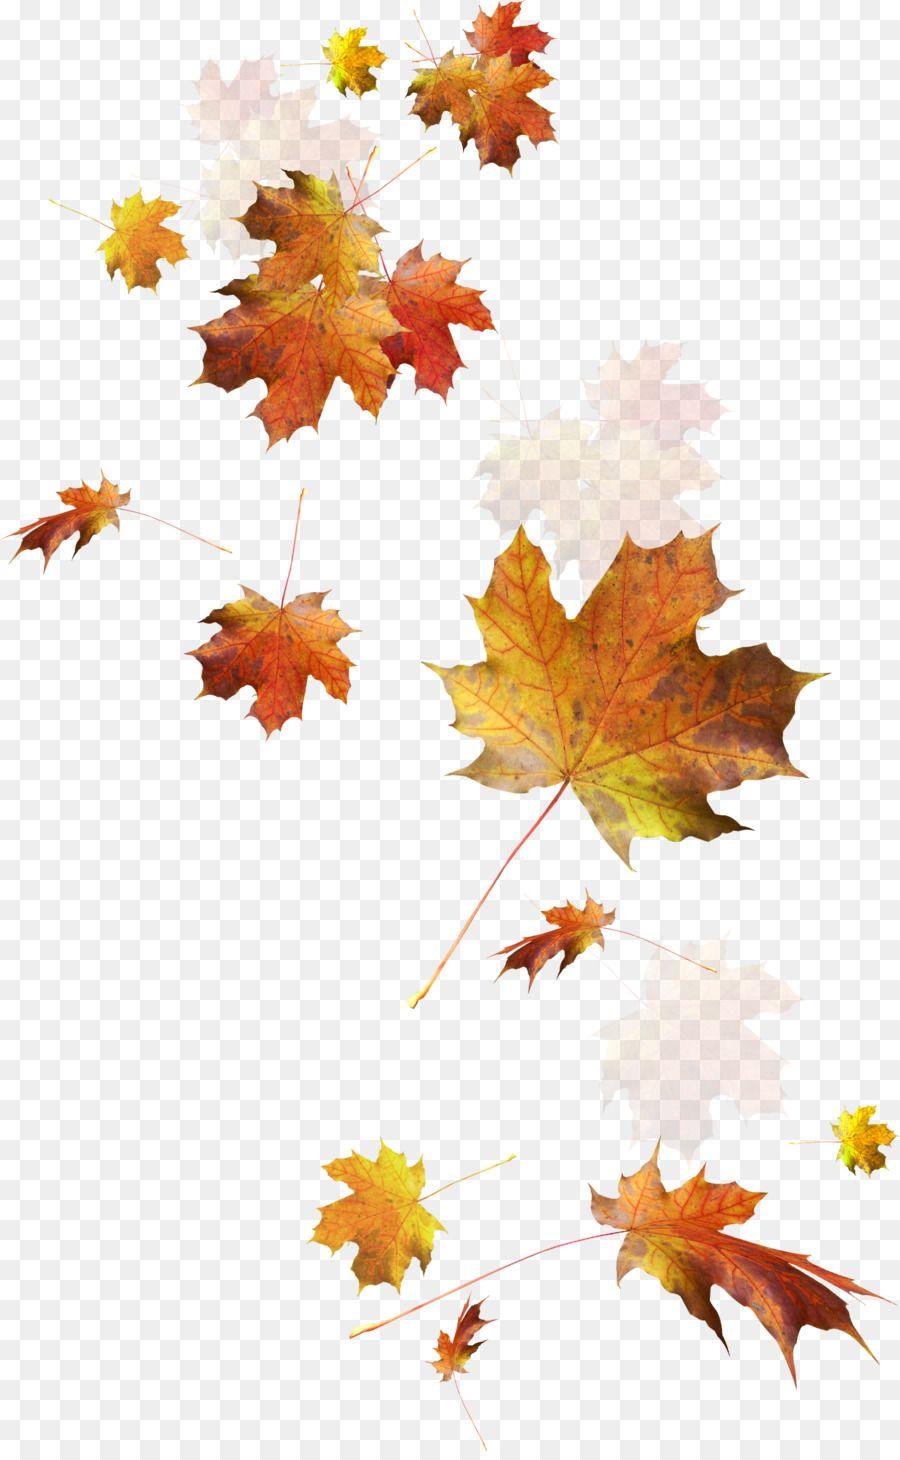 Autumn Pattern Background - Unlimited Download. cleanpng.com. #fallingleaves